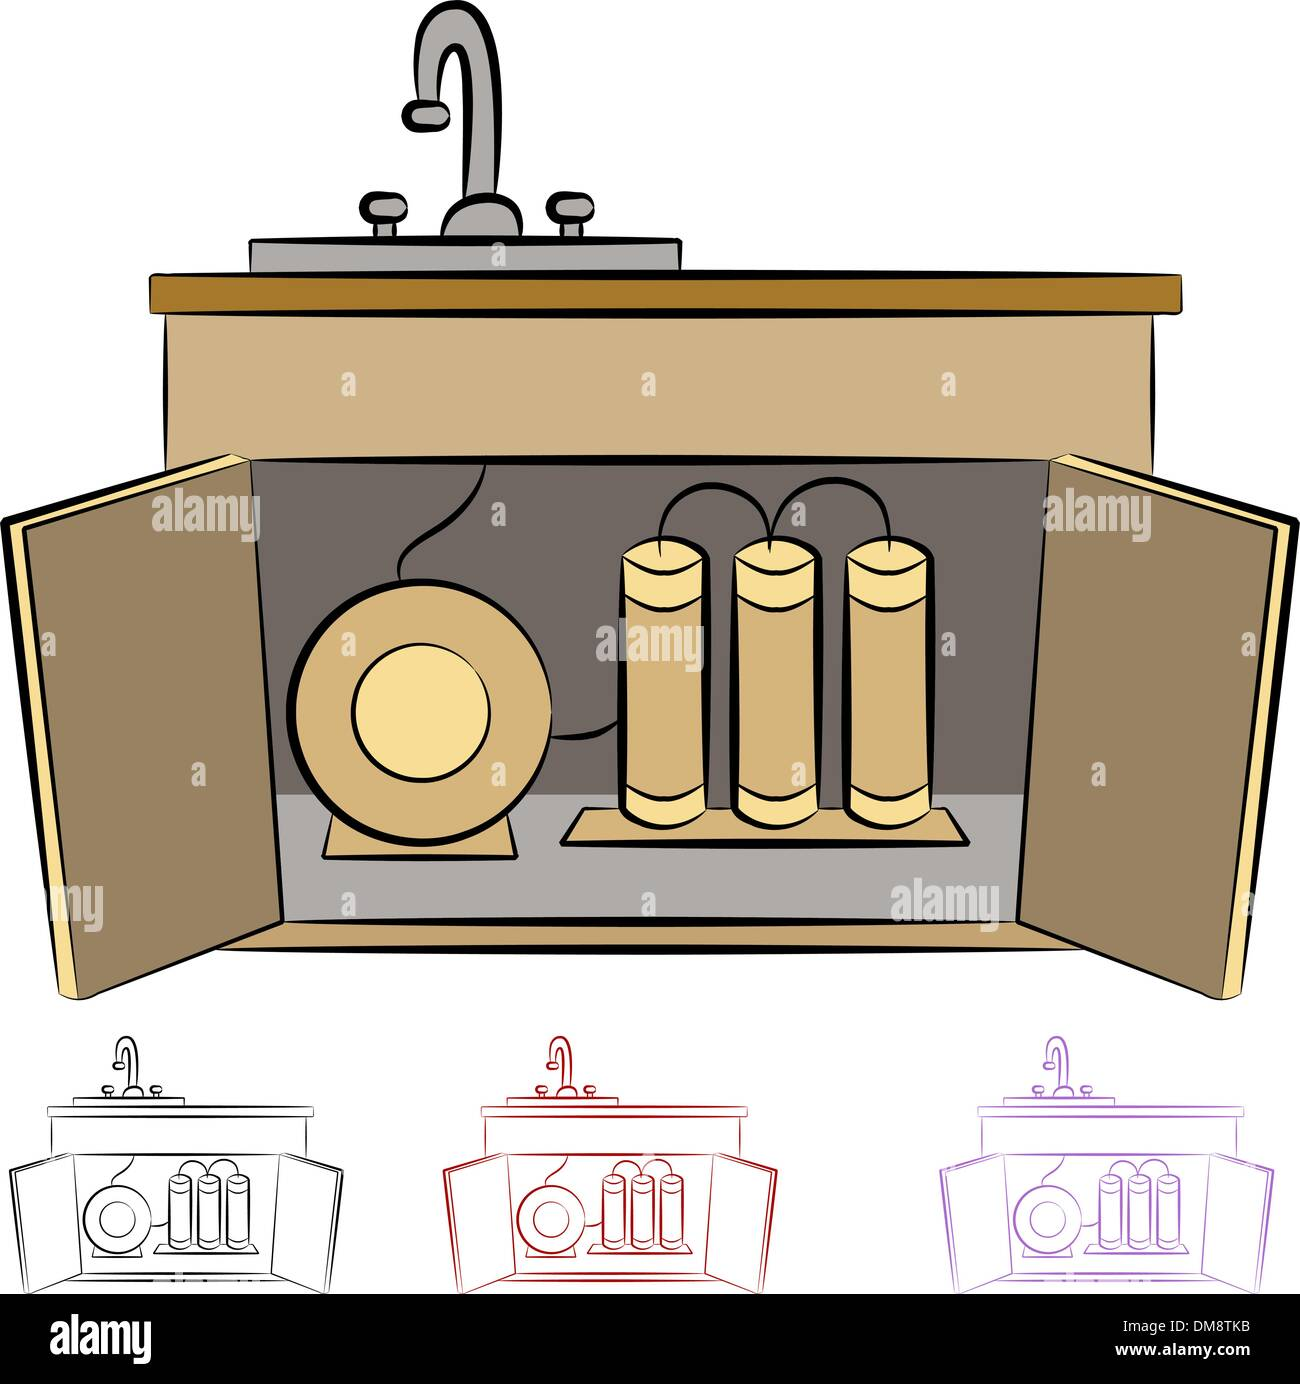 Kitchen Sink Water Filtration System Stock Vector Art ...